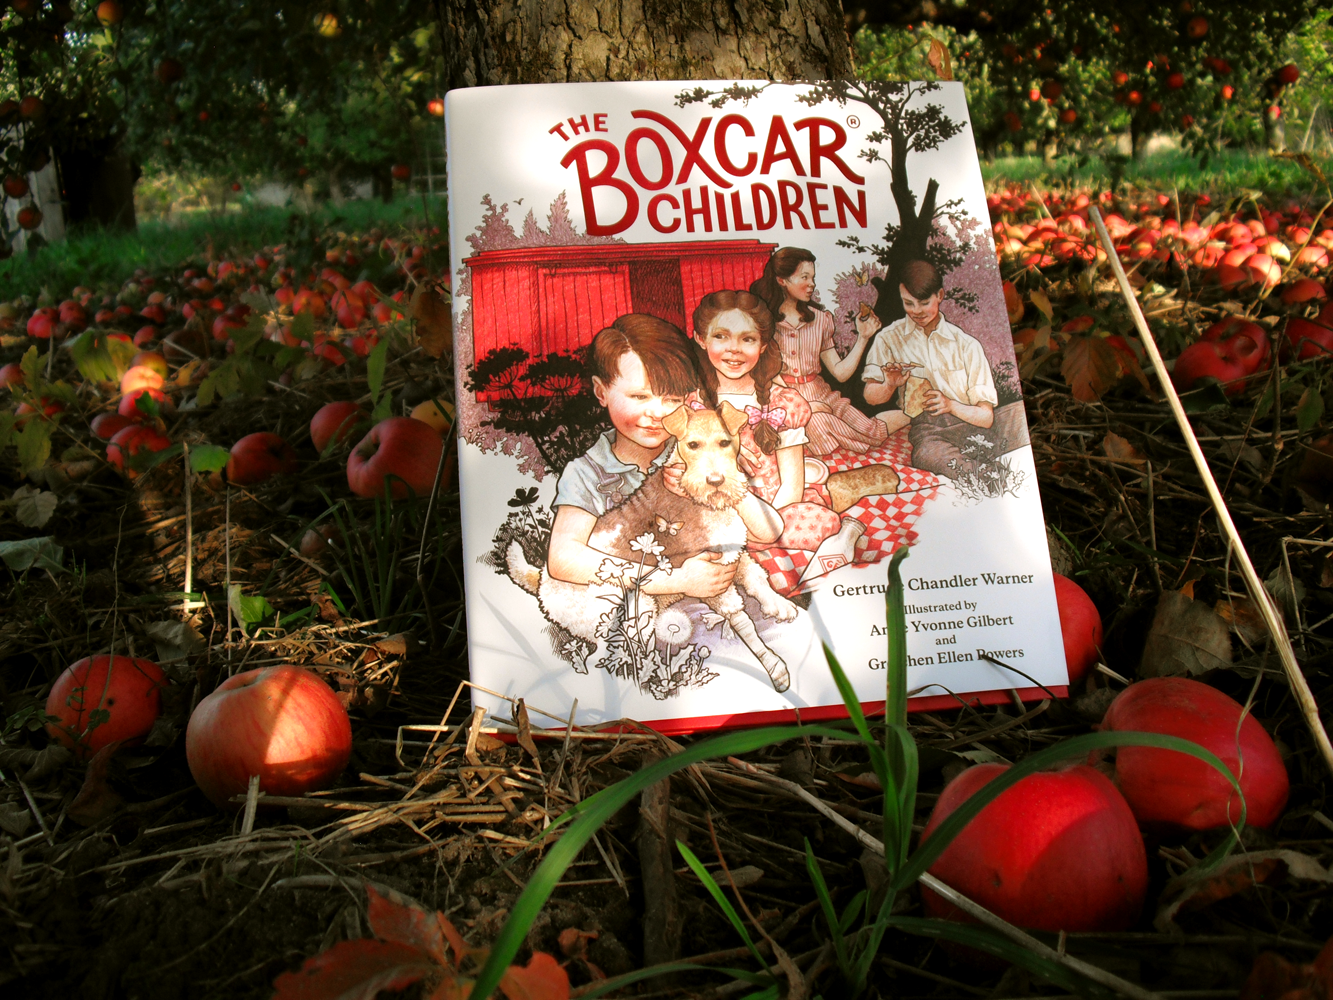 Boxcar-children-book-release1.png